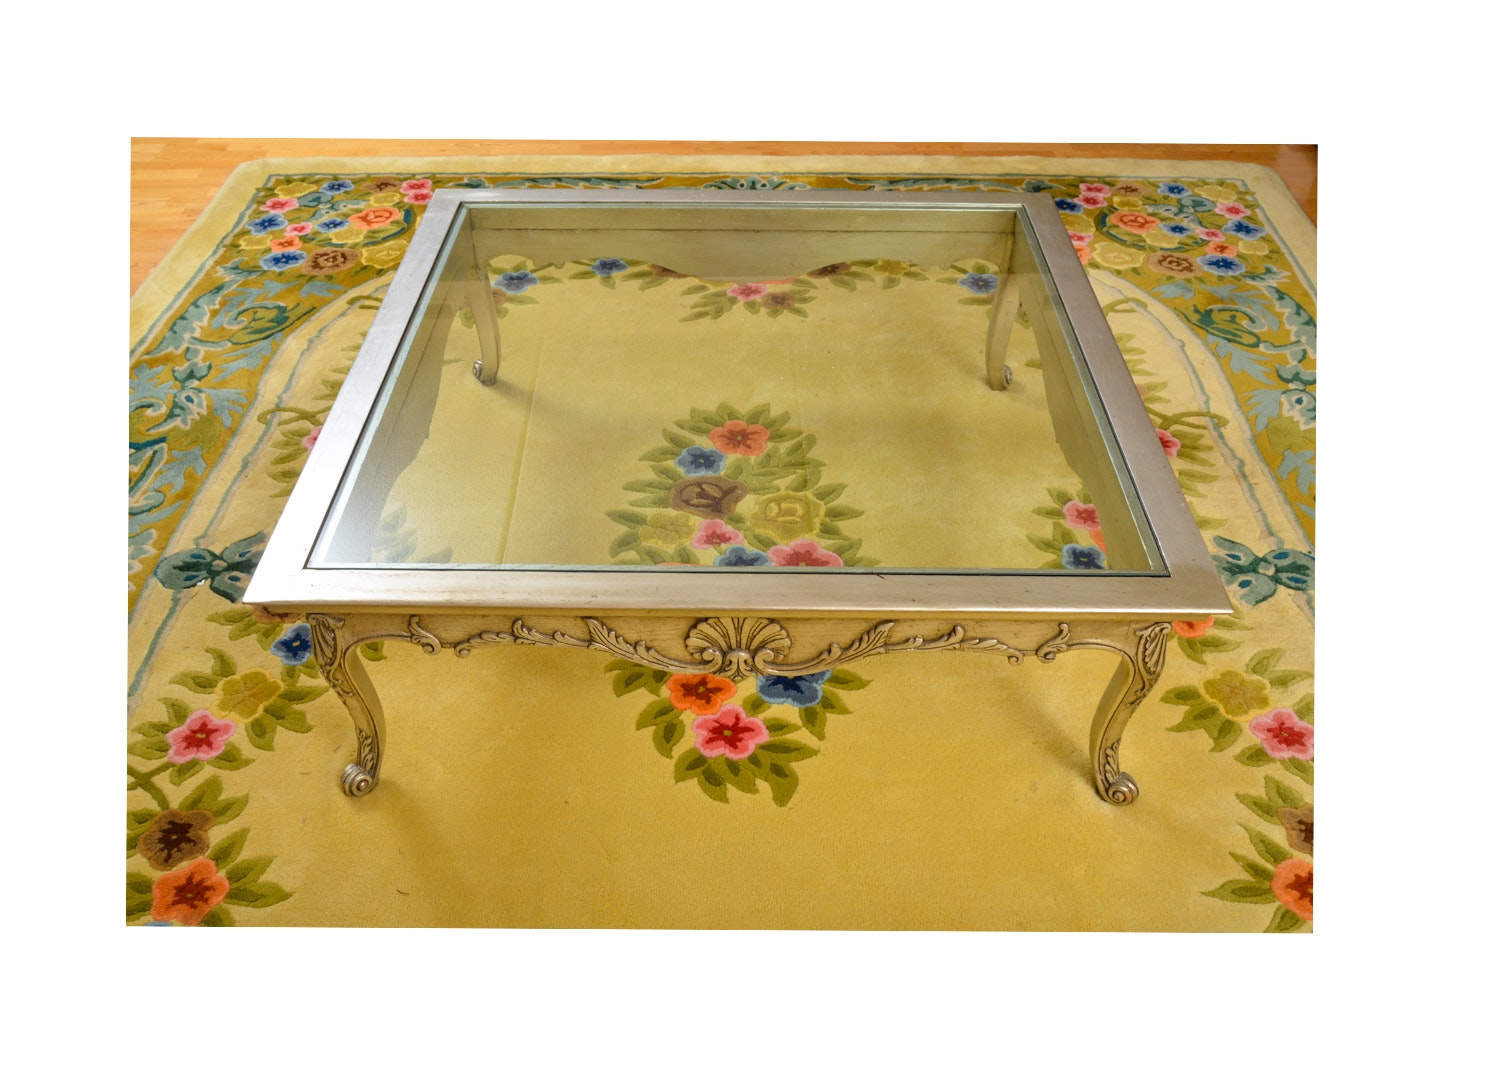 French Provincial Style Glass Top Coffee Table